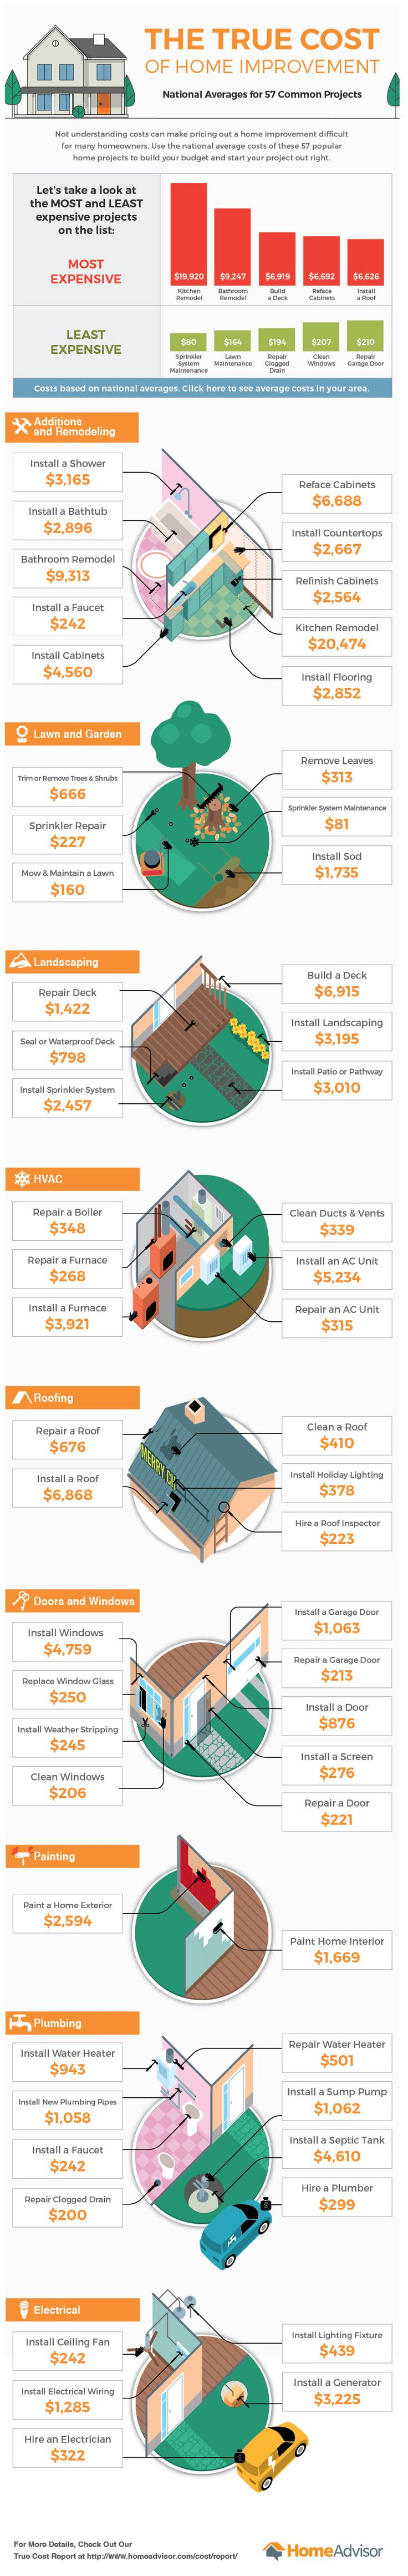 Infographic: Home Improvement Costs - Home Improvement Tips & Advice from HomeAdvisor